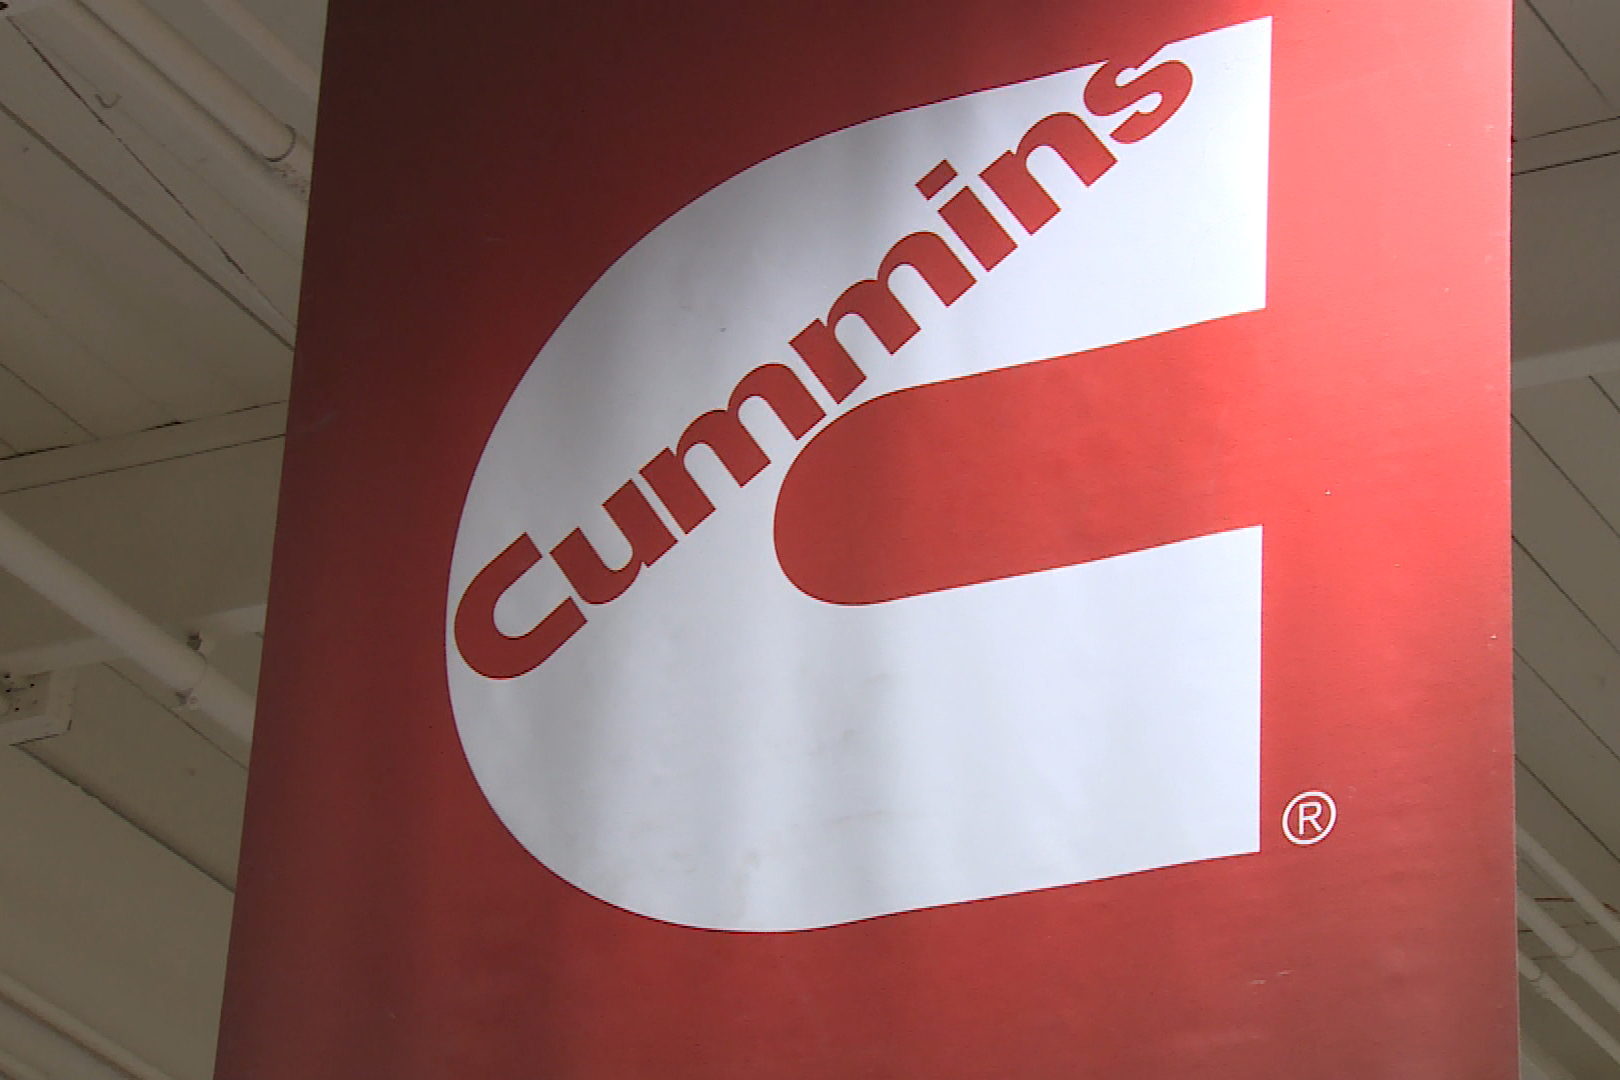 The Cummins logo on a red banner.